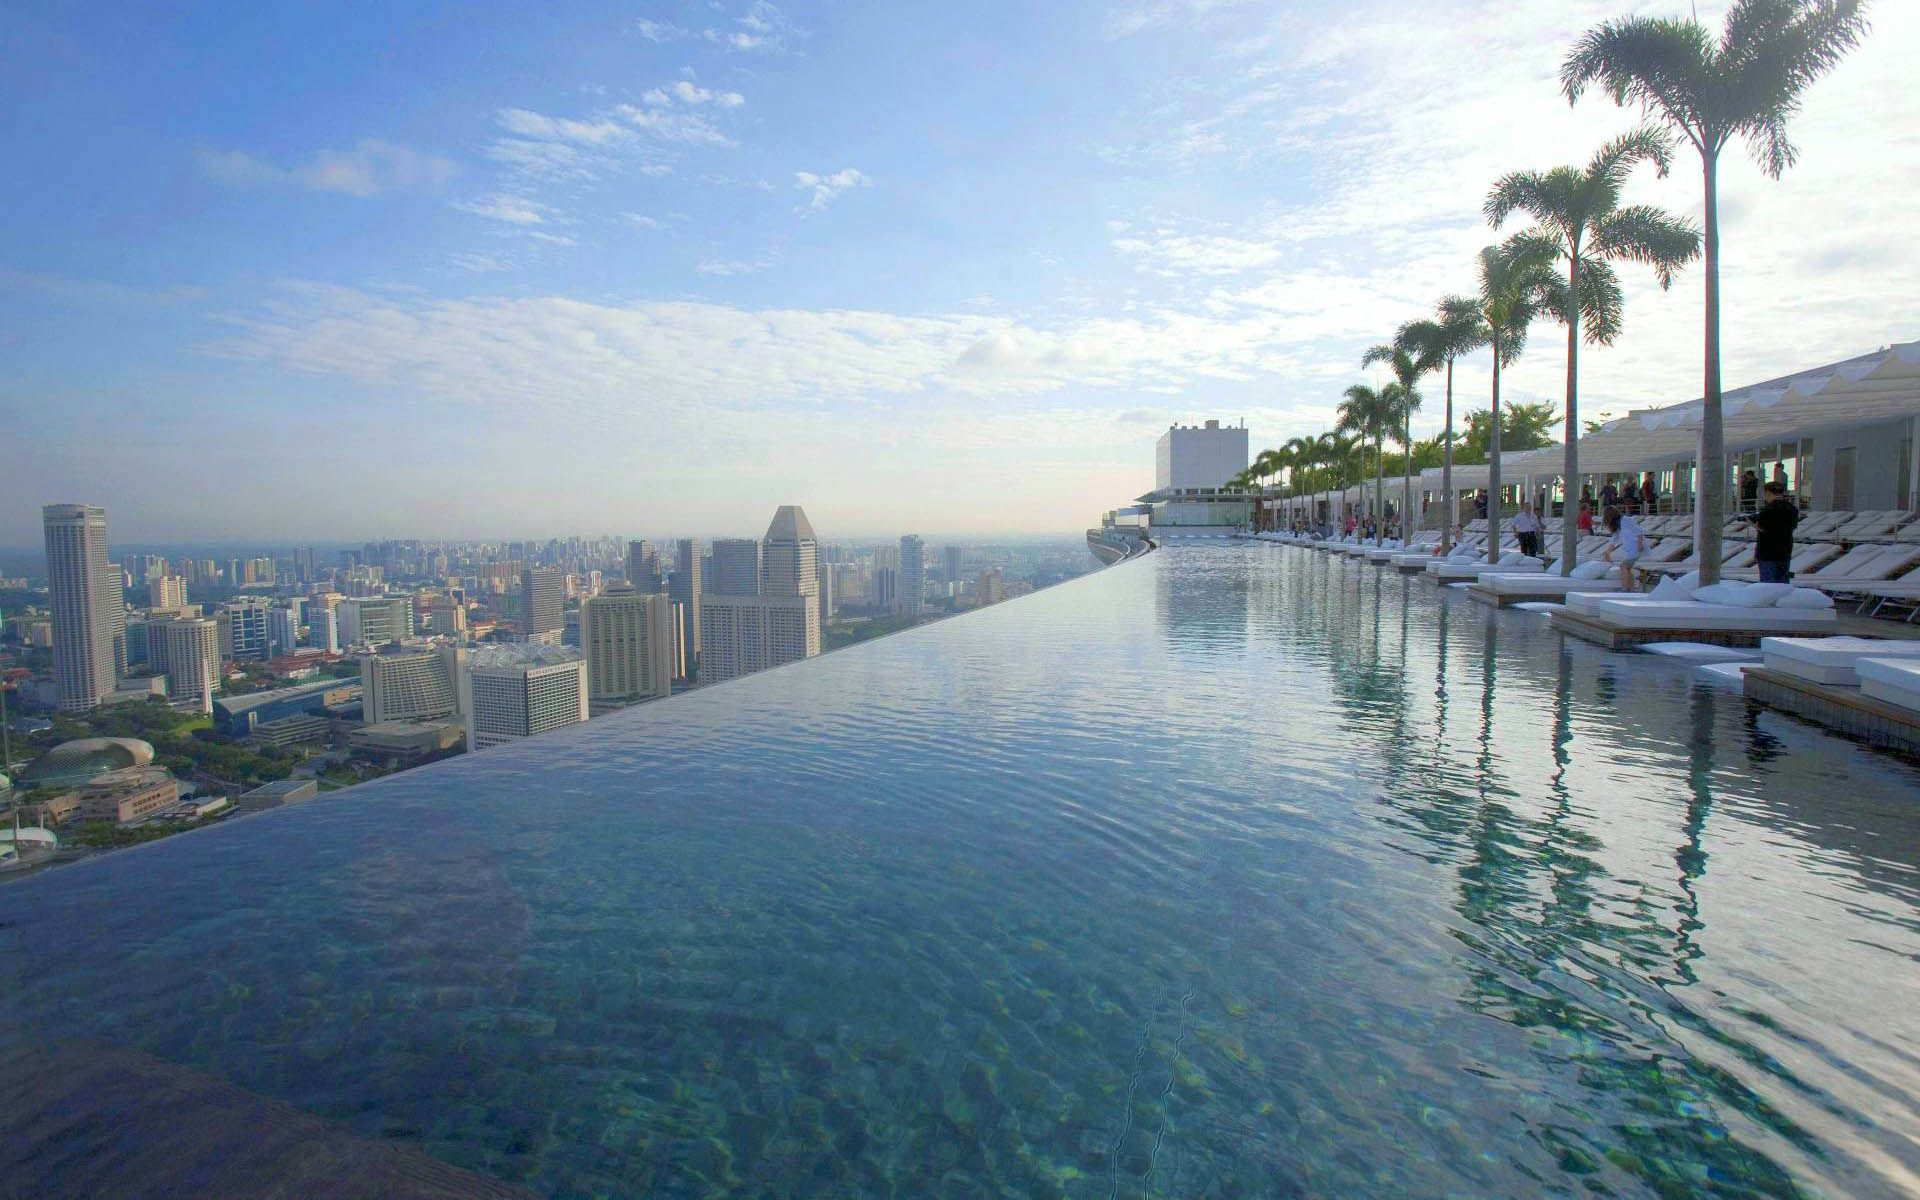 Infinity pool singapore wallpaper Edge Infinity Pool Marina Bay Sands Hd Wallpaper Pinterest Infinity Pool Marina Bay Sands Hd Wallpaper Best Place In The